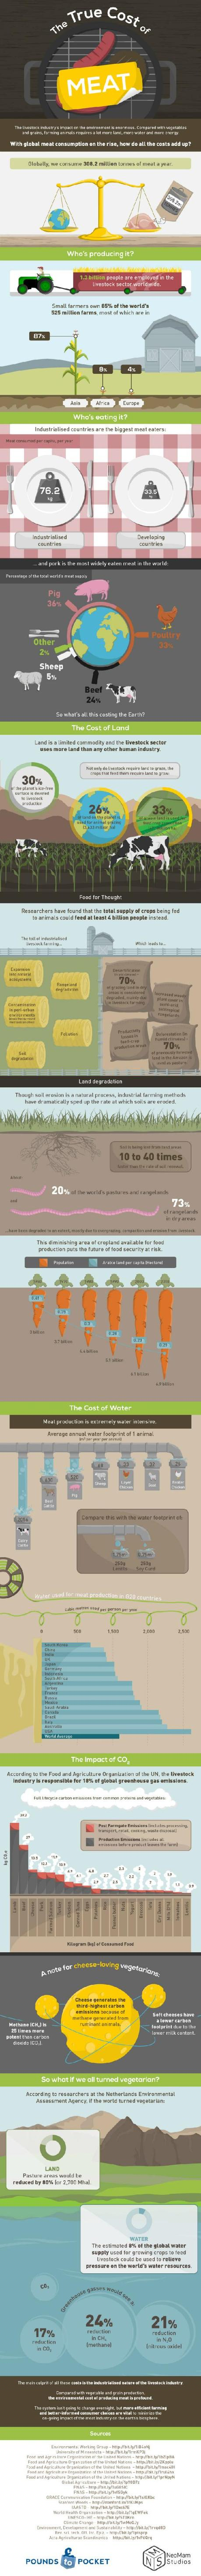 environmental impacts of eating meat infographic